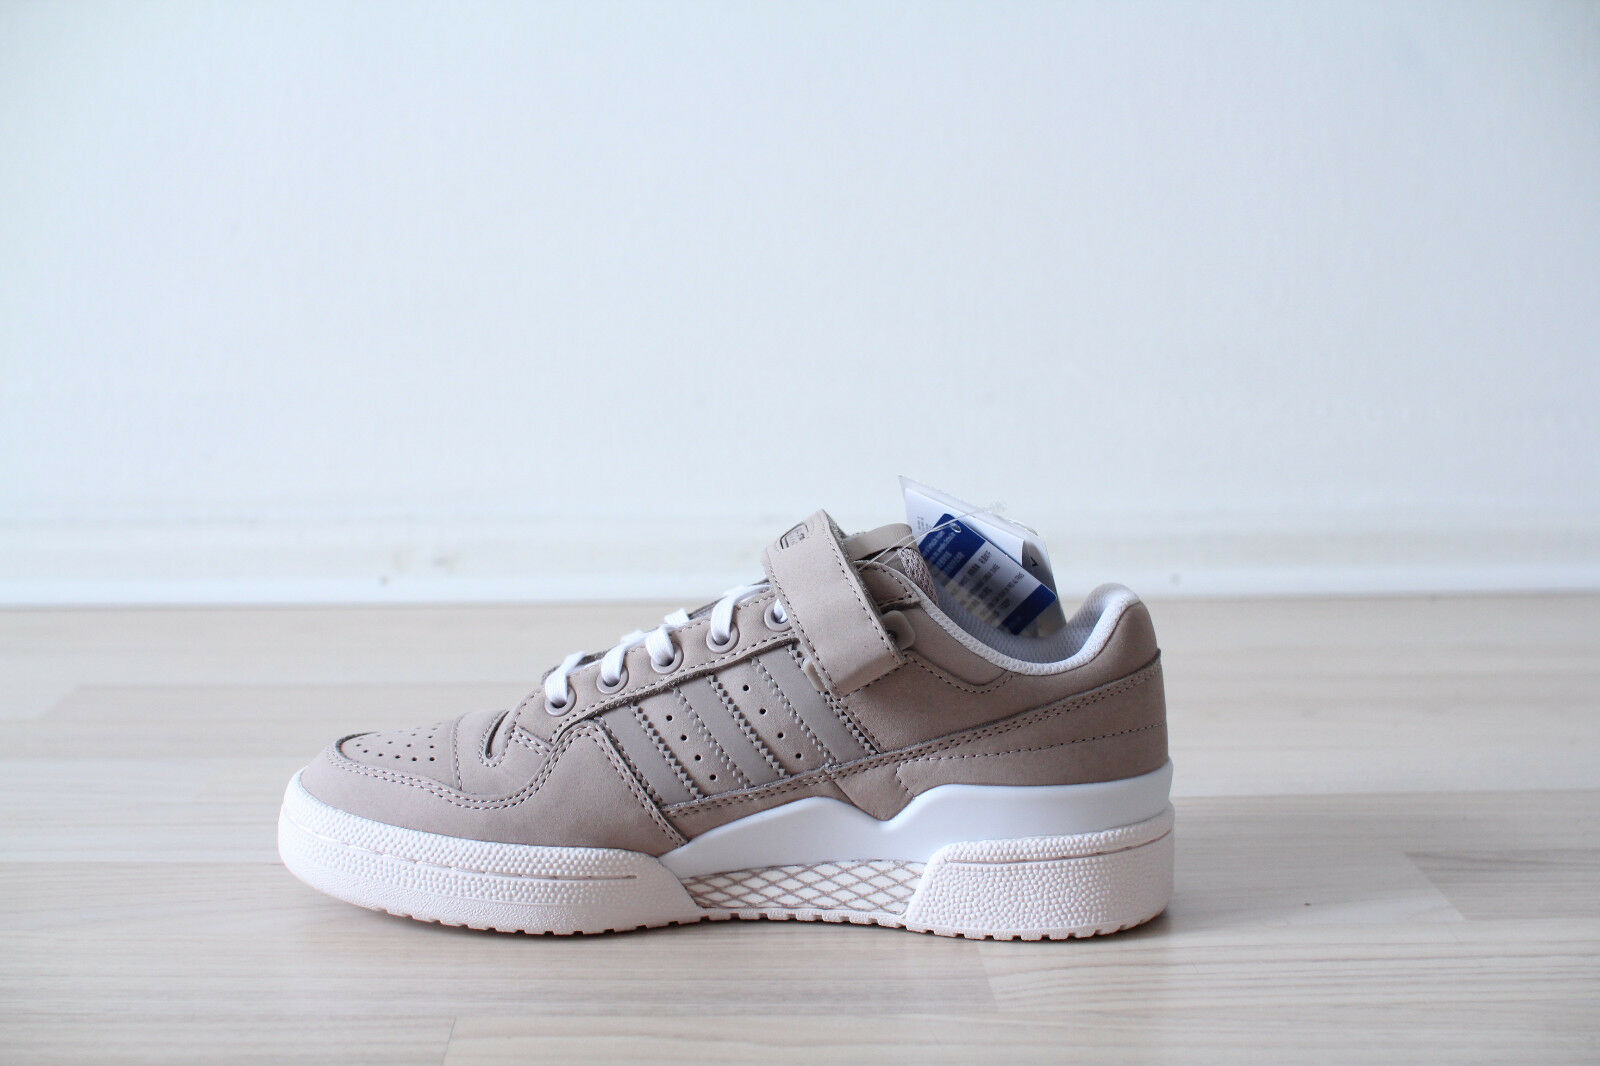 ADIDAS Forum LOW LOW LOW Bianco Beige TG 36,37,38,39,40,41,42,43,44,45,46 NUOVO & OVP 7140a6